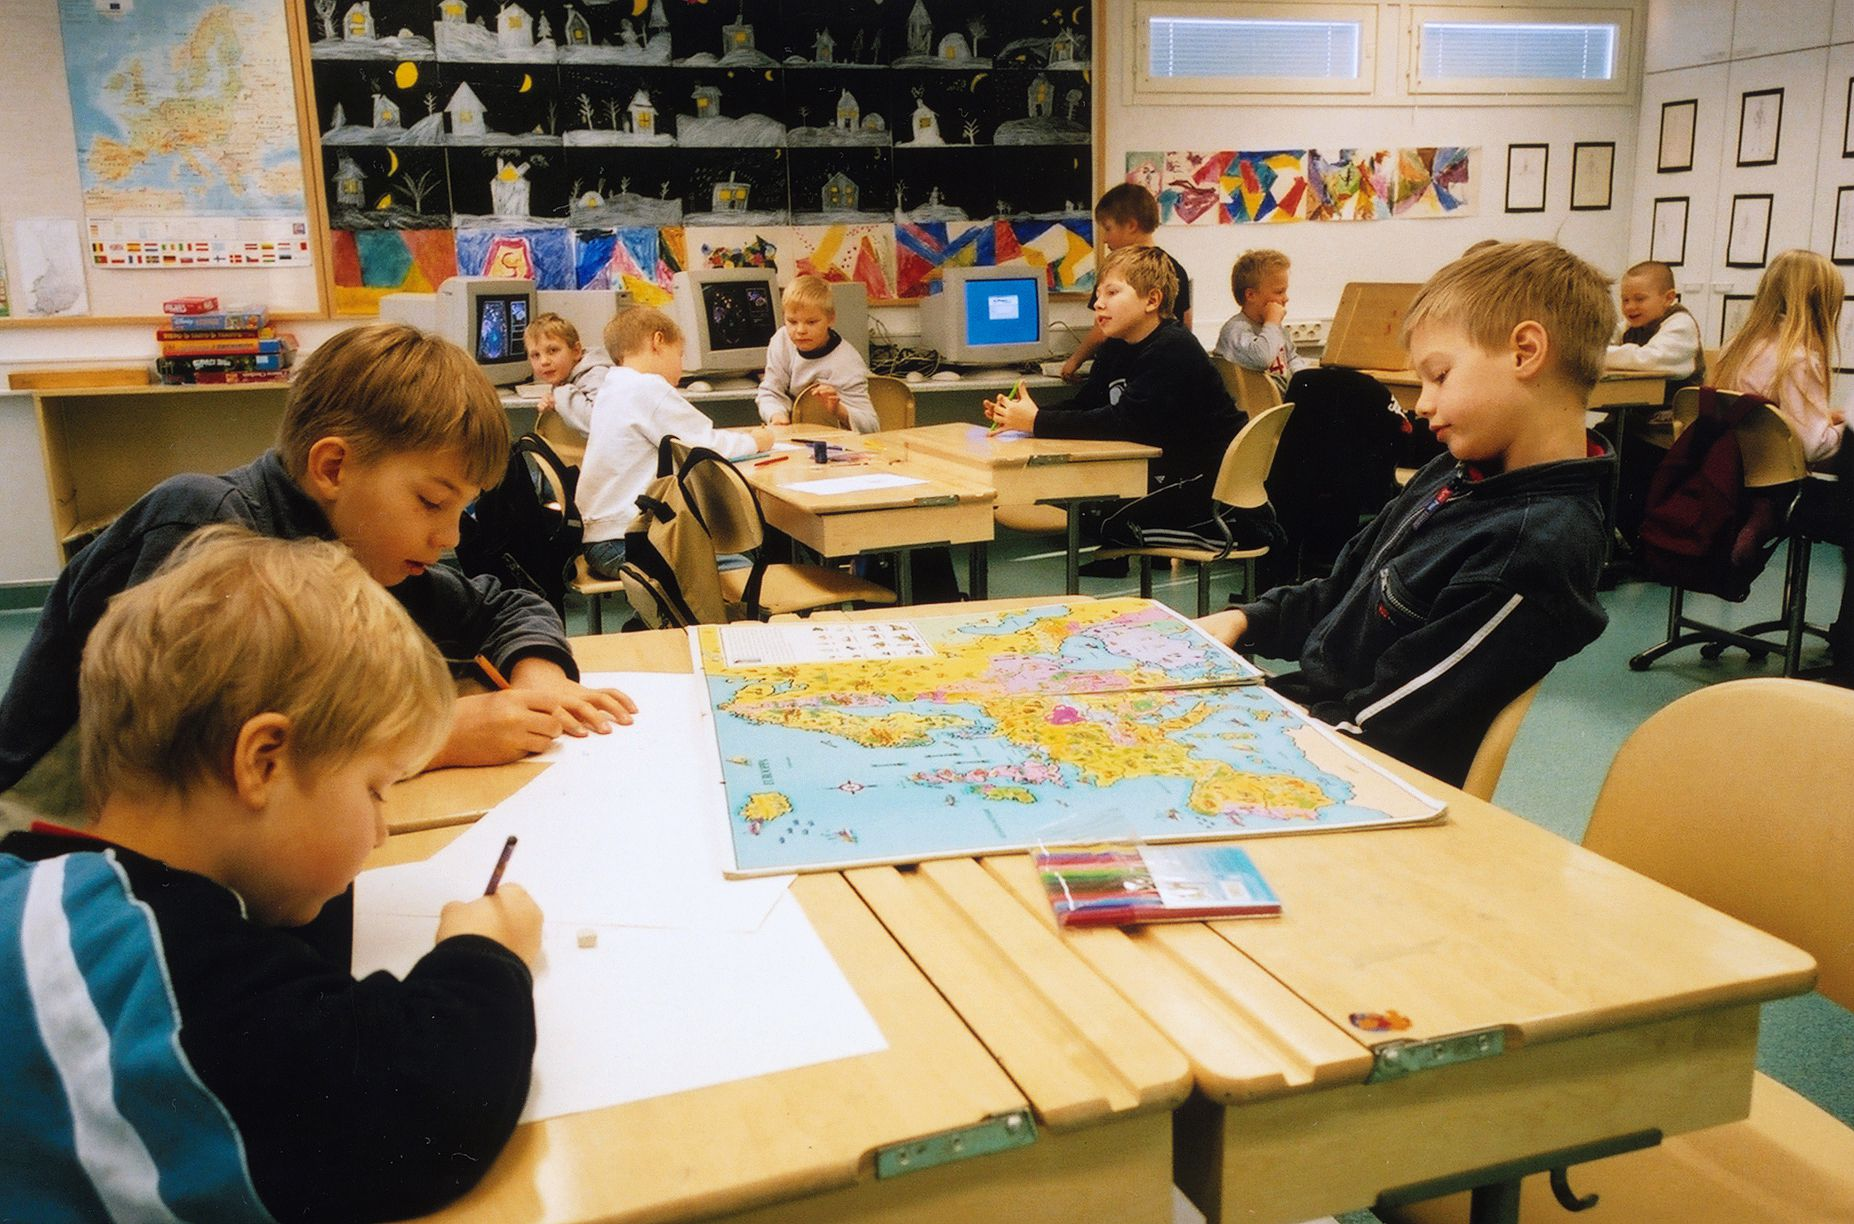 A class at the comprehensive primary school, Ilola Koulu, near Helsinki, Finland.